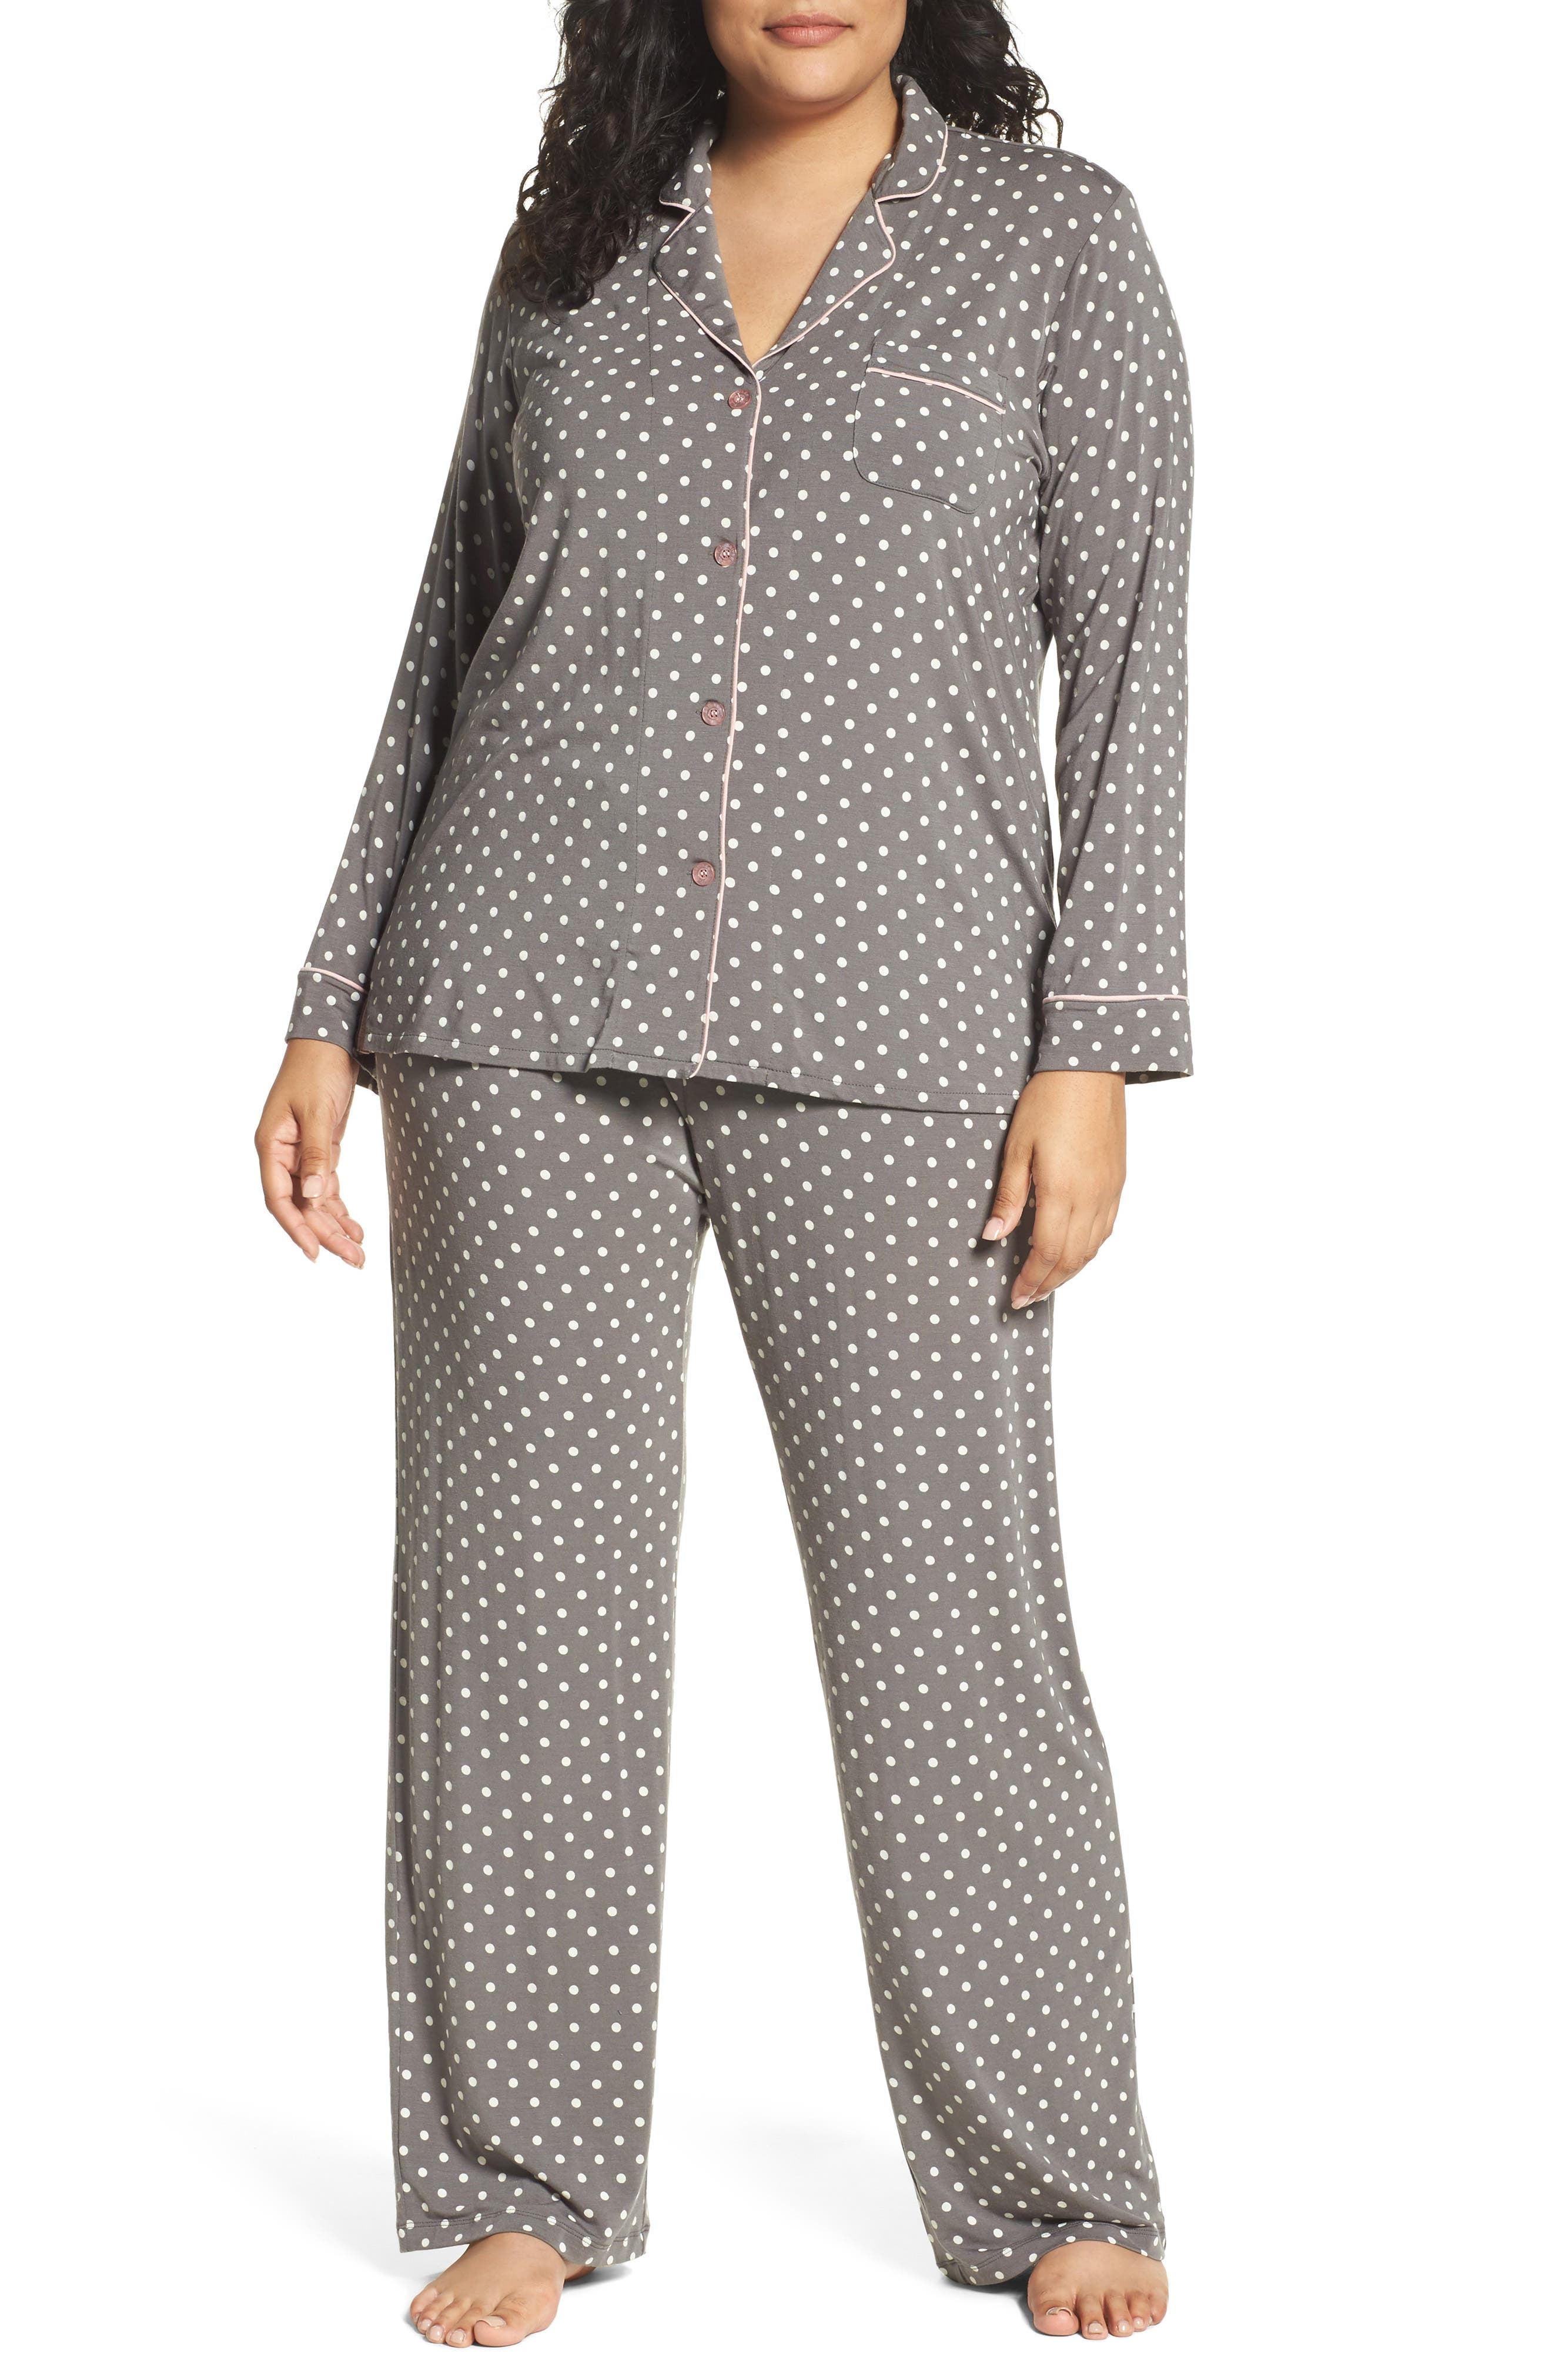 Polka Dot Pajamas,                         Main,                         color,